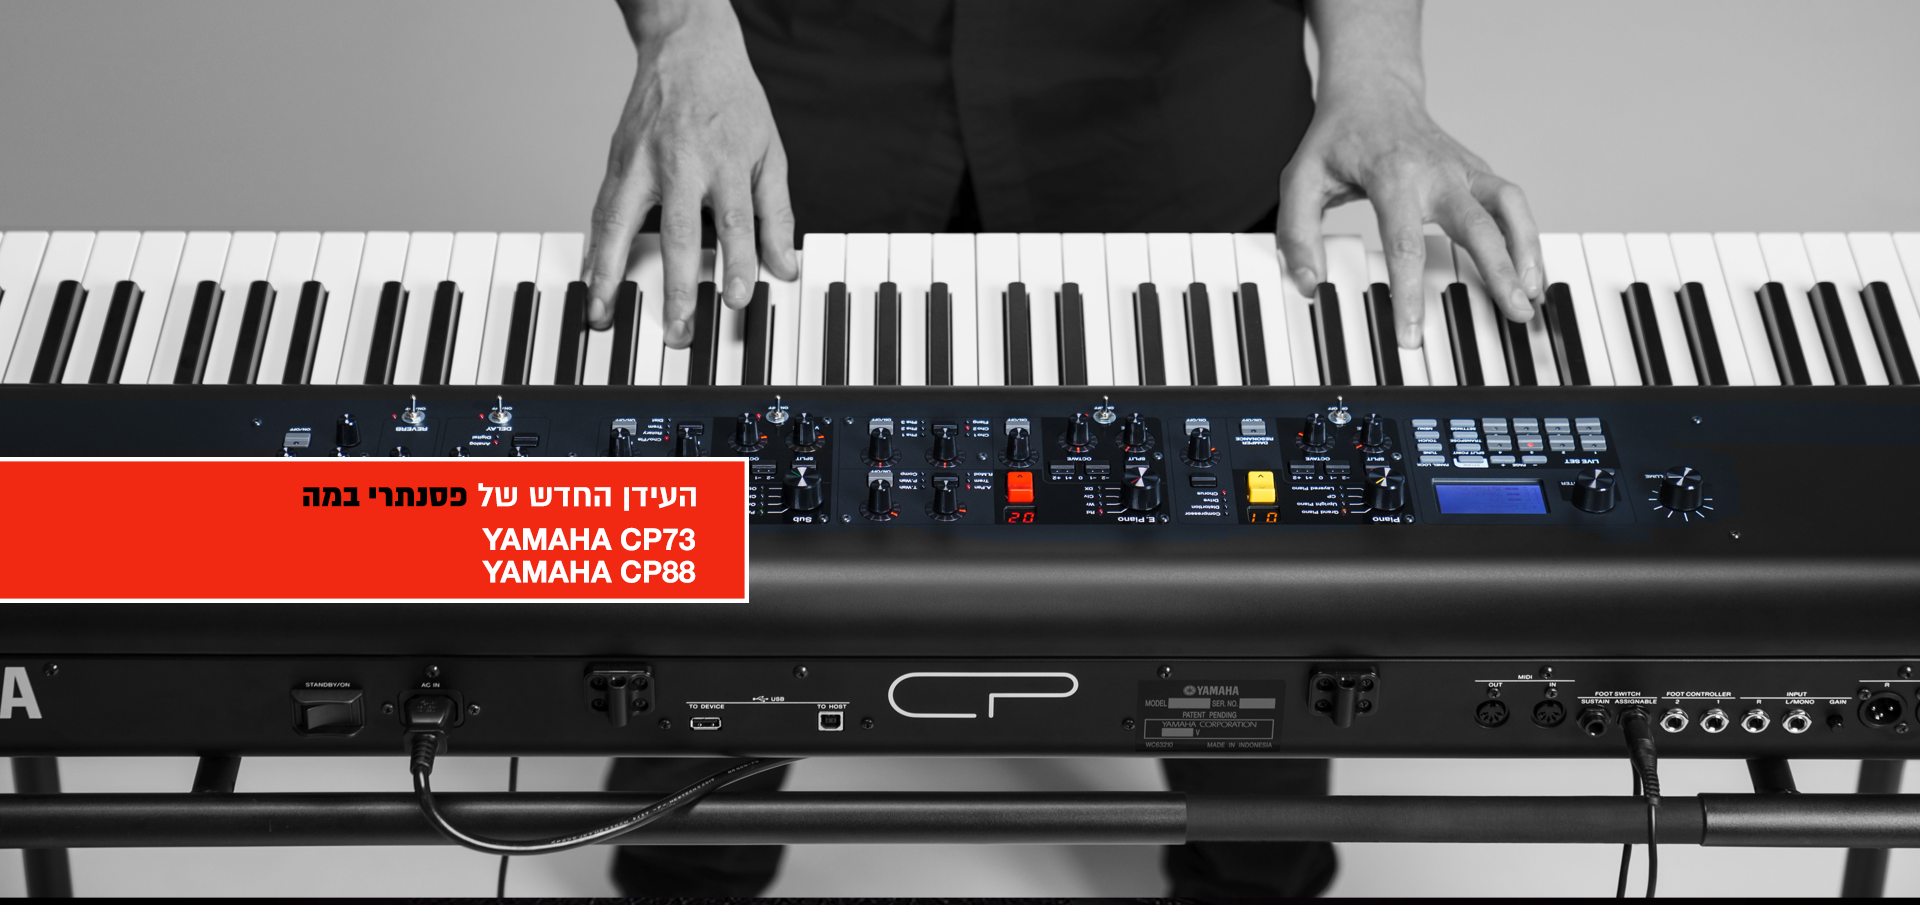 YAMAHA STAGE PIANO CP73 & CP88